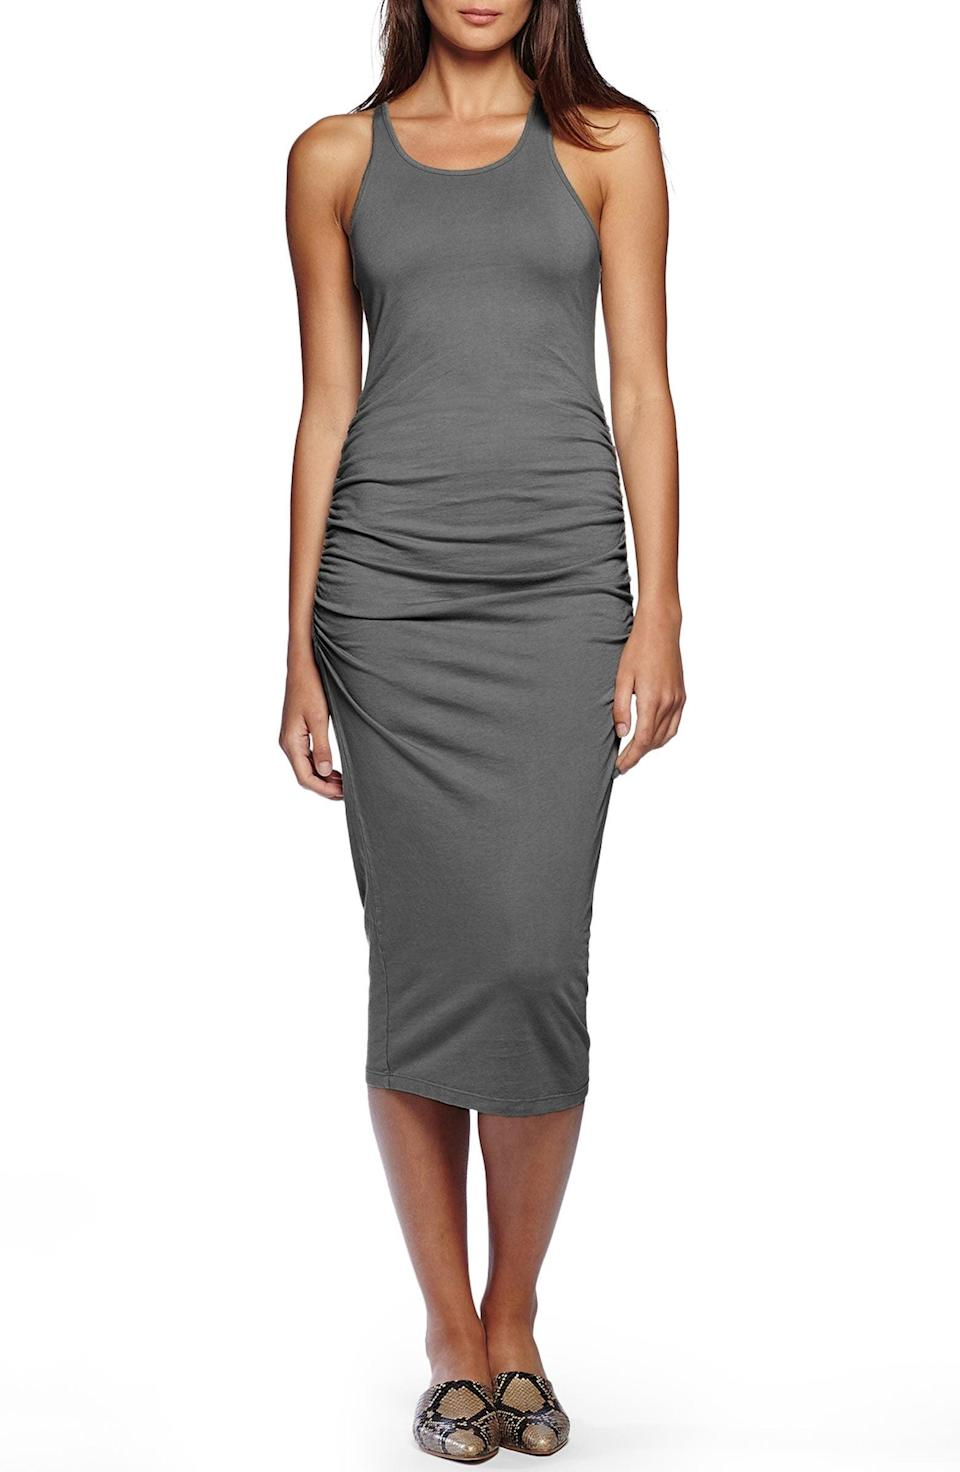 <p>This <span>Michael Stars Racerback Midi Dress</span> ($88) is one of those dresses that once you try it on, you'll never want to take it off.</p>